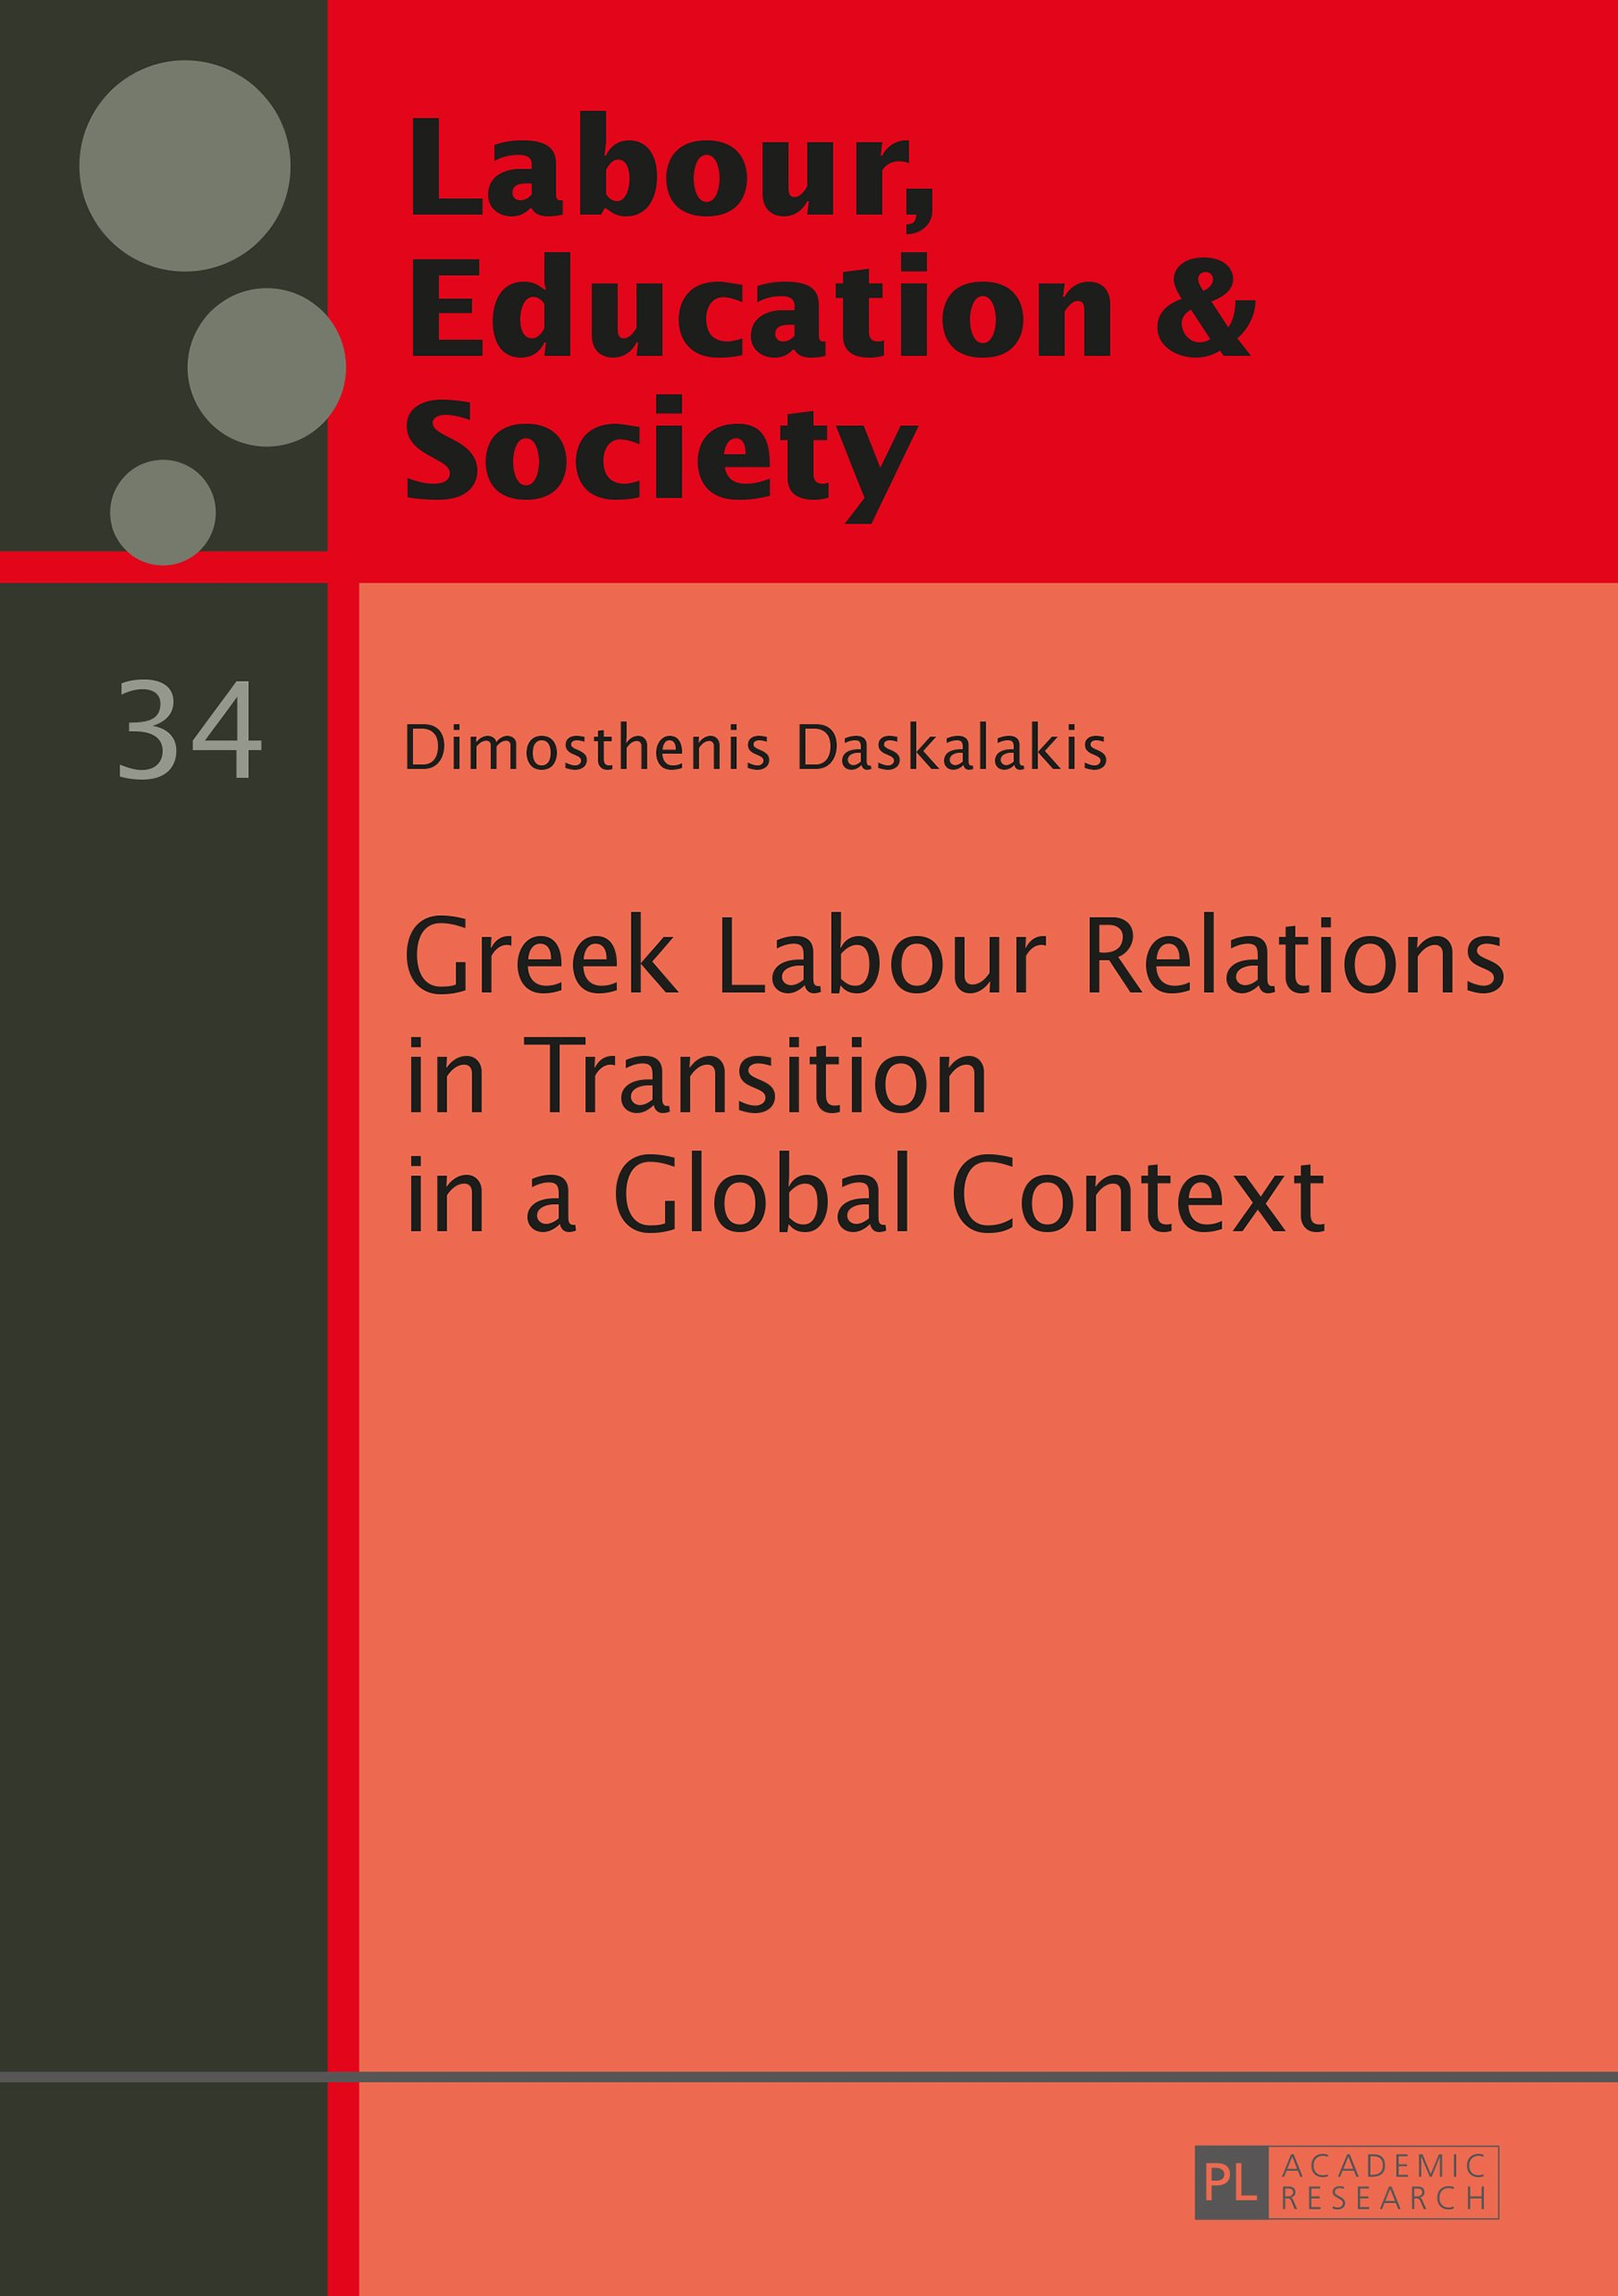 Greek Labour Relations in Transition in a Global Context (Arbeit, Bildung und Gesellschaft / Labour, Education and Society Book 34)